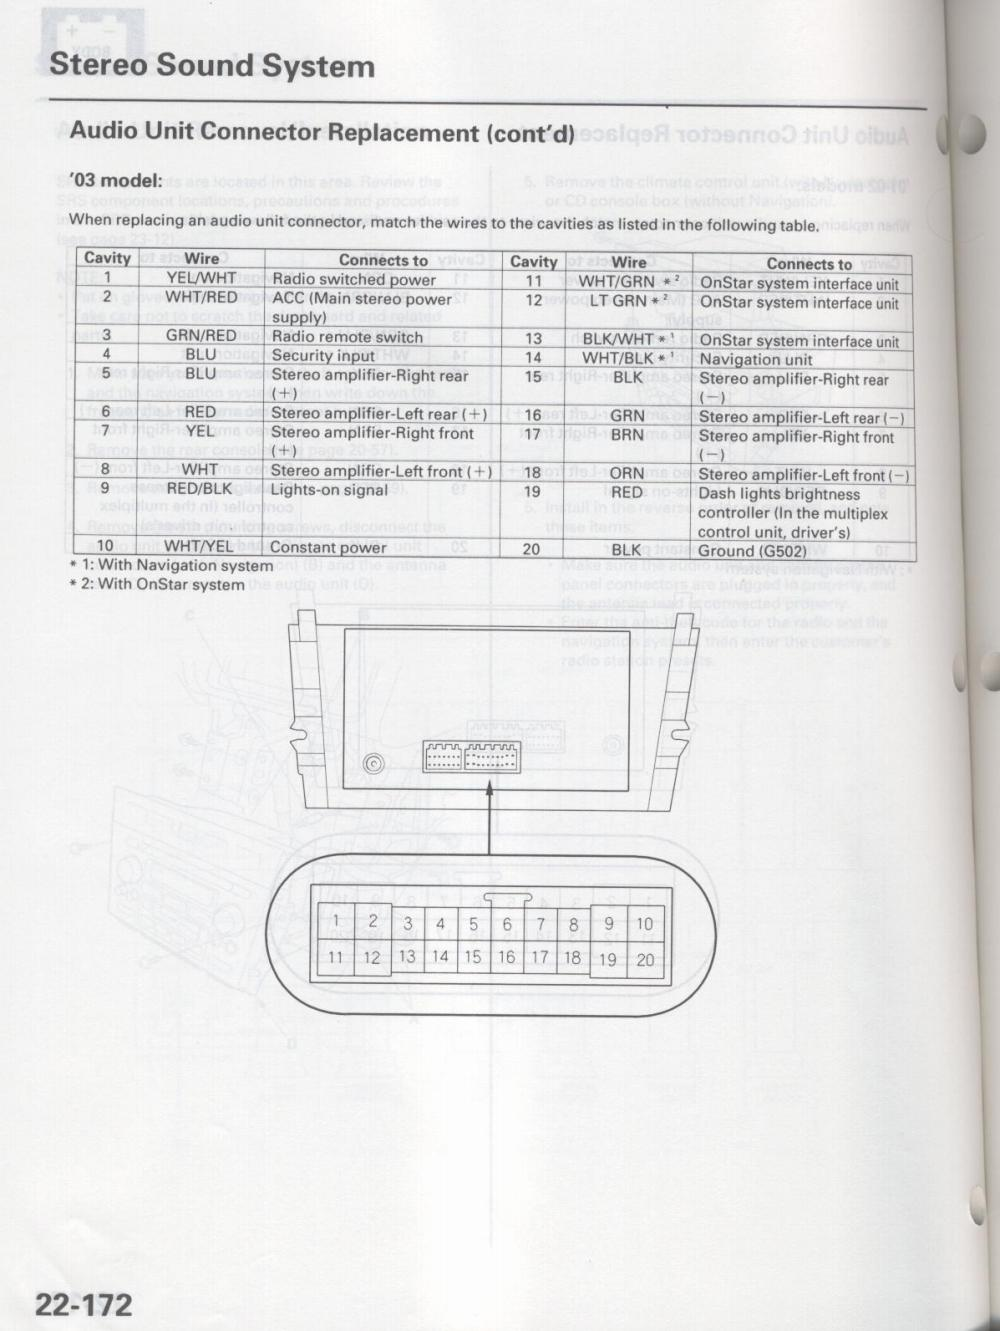 Acura Tl Wiring Diagram Radio Library Stereo 2003 For 2000 Hp Photosmart Printer Harness